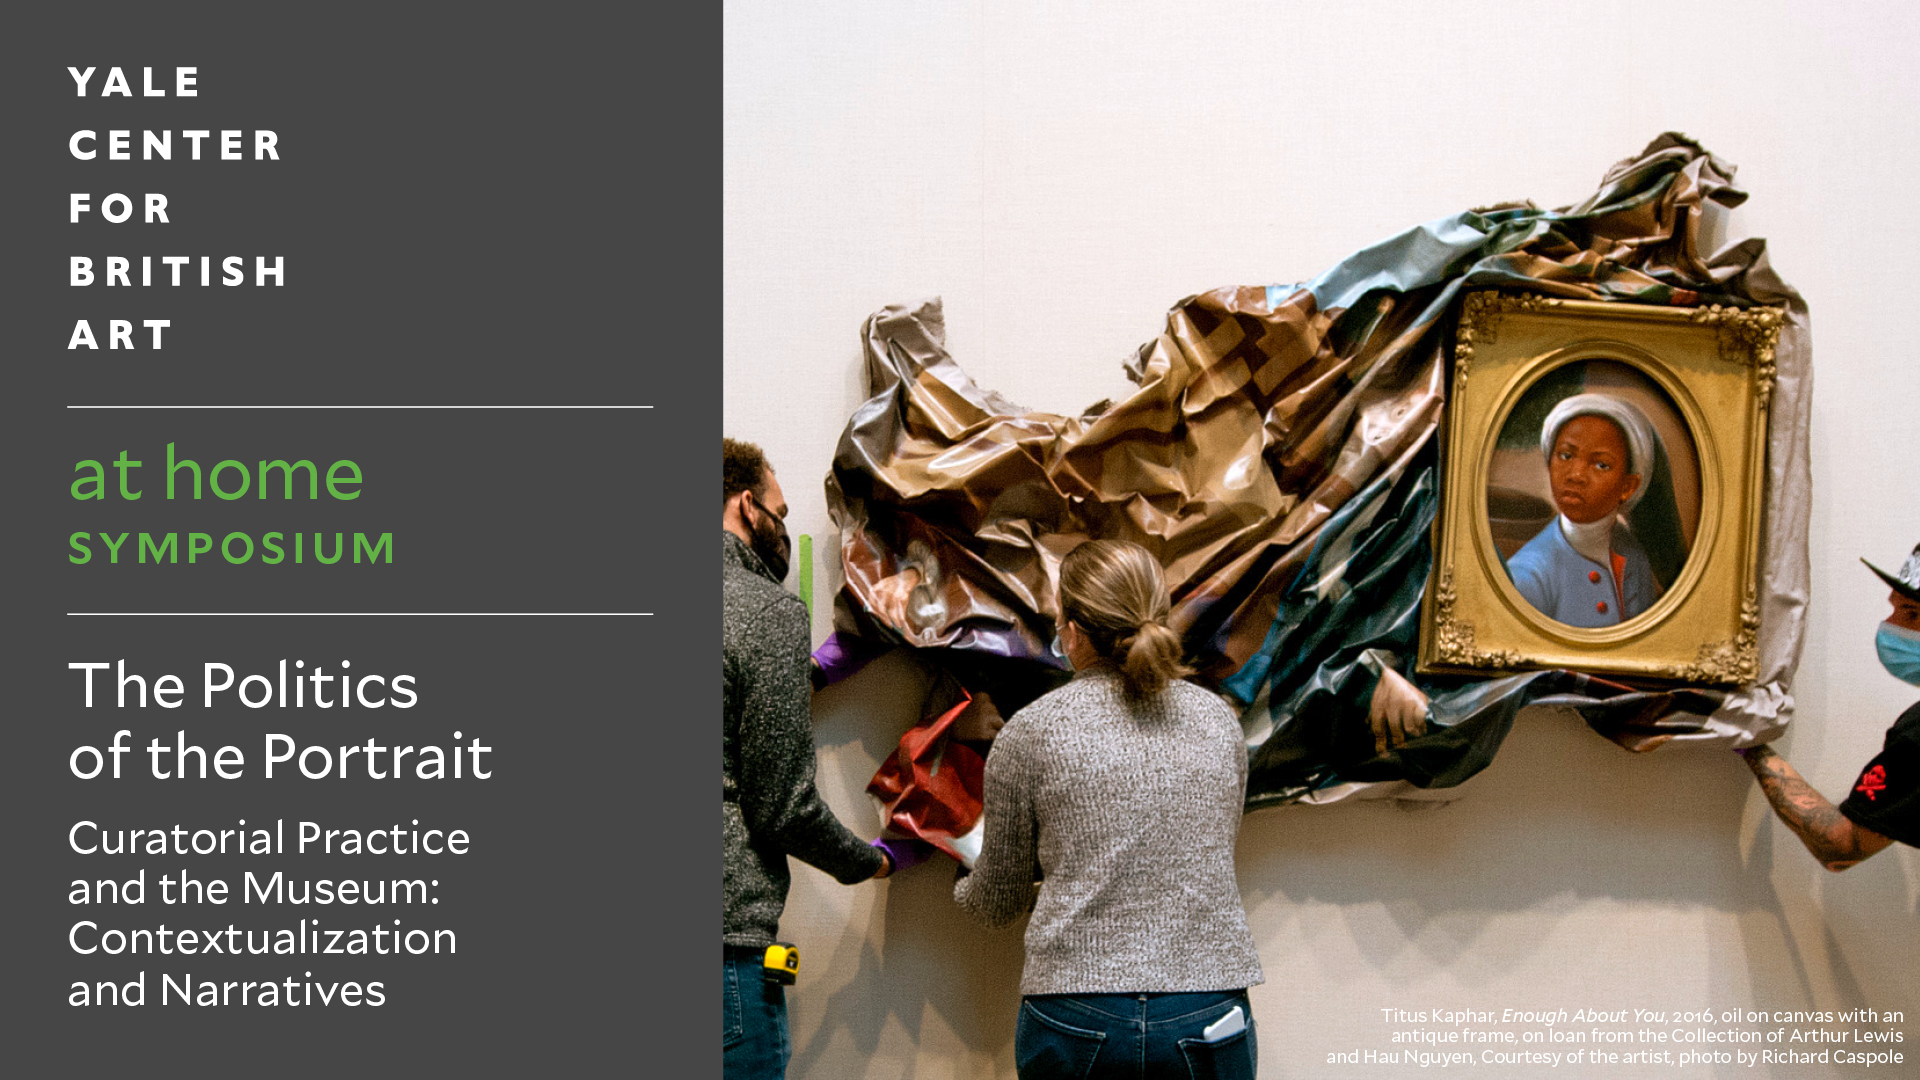 Installation of Titus Kaphar's Enough About You (2016) at the Yale Center for British Art, October 2020, on loan from the Collection of Arthur Lewis and Hau Nguyen, Courtesy of the artist, photo by Richard Caspole